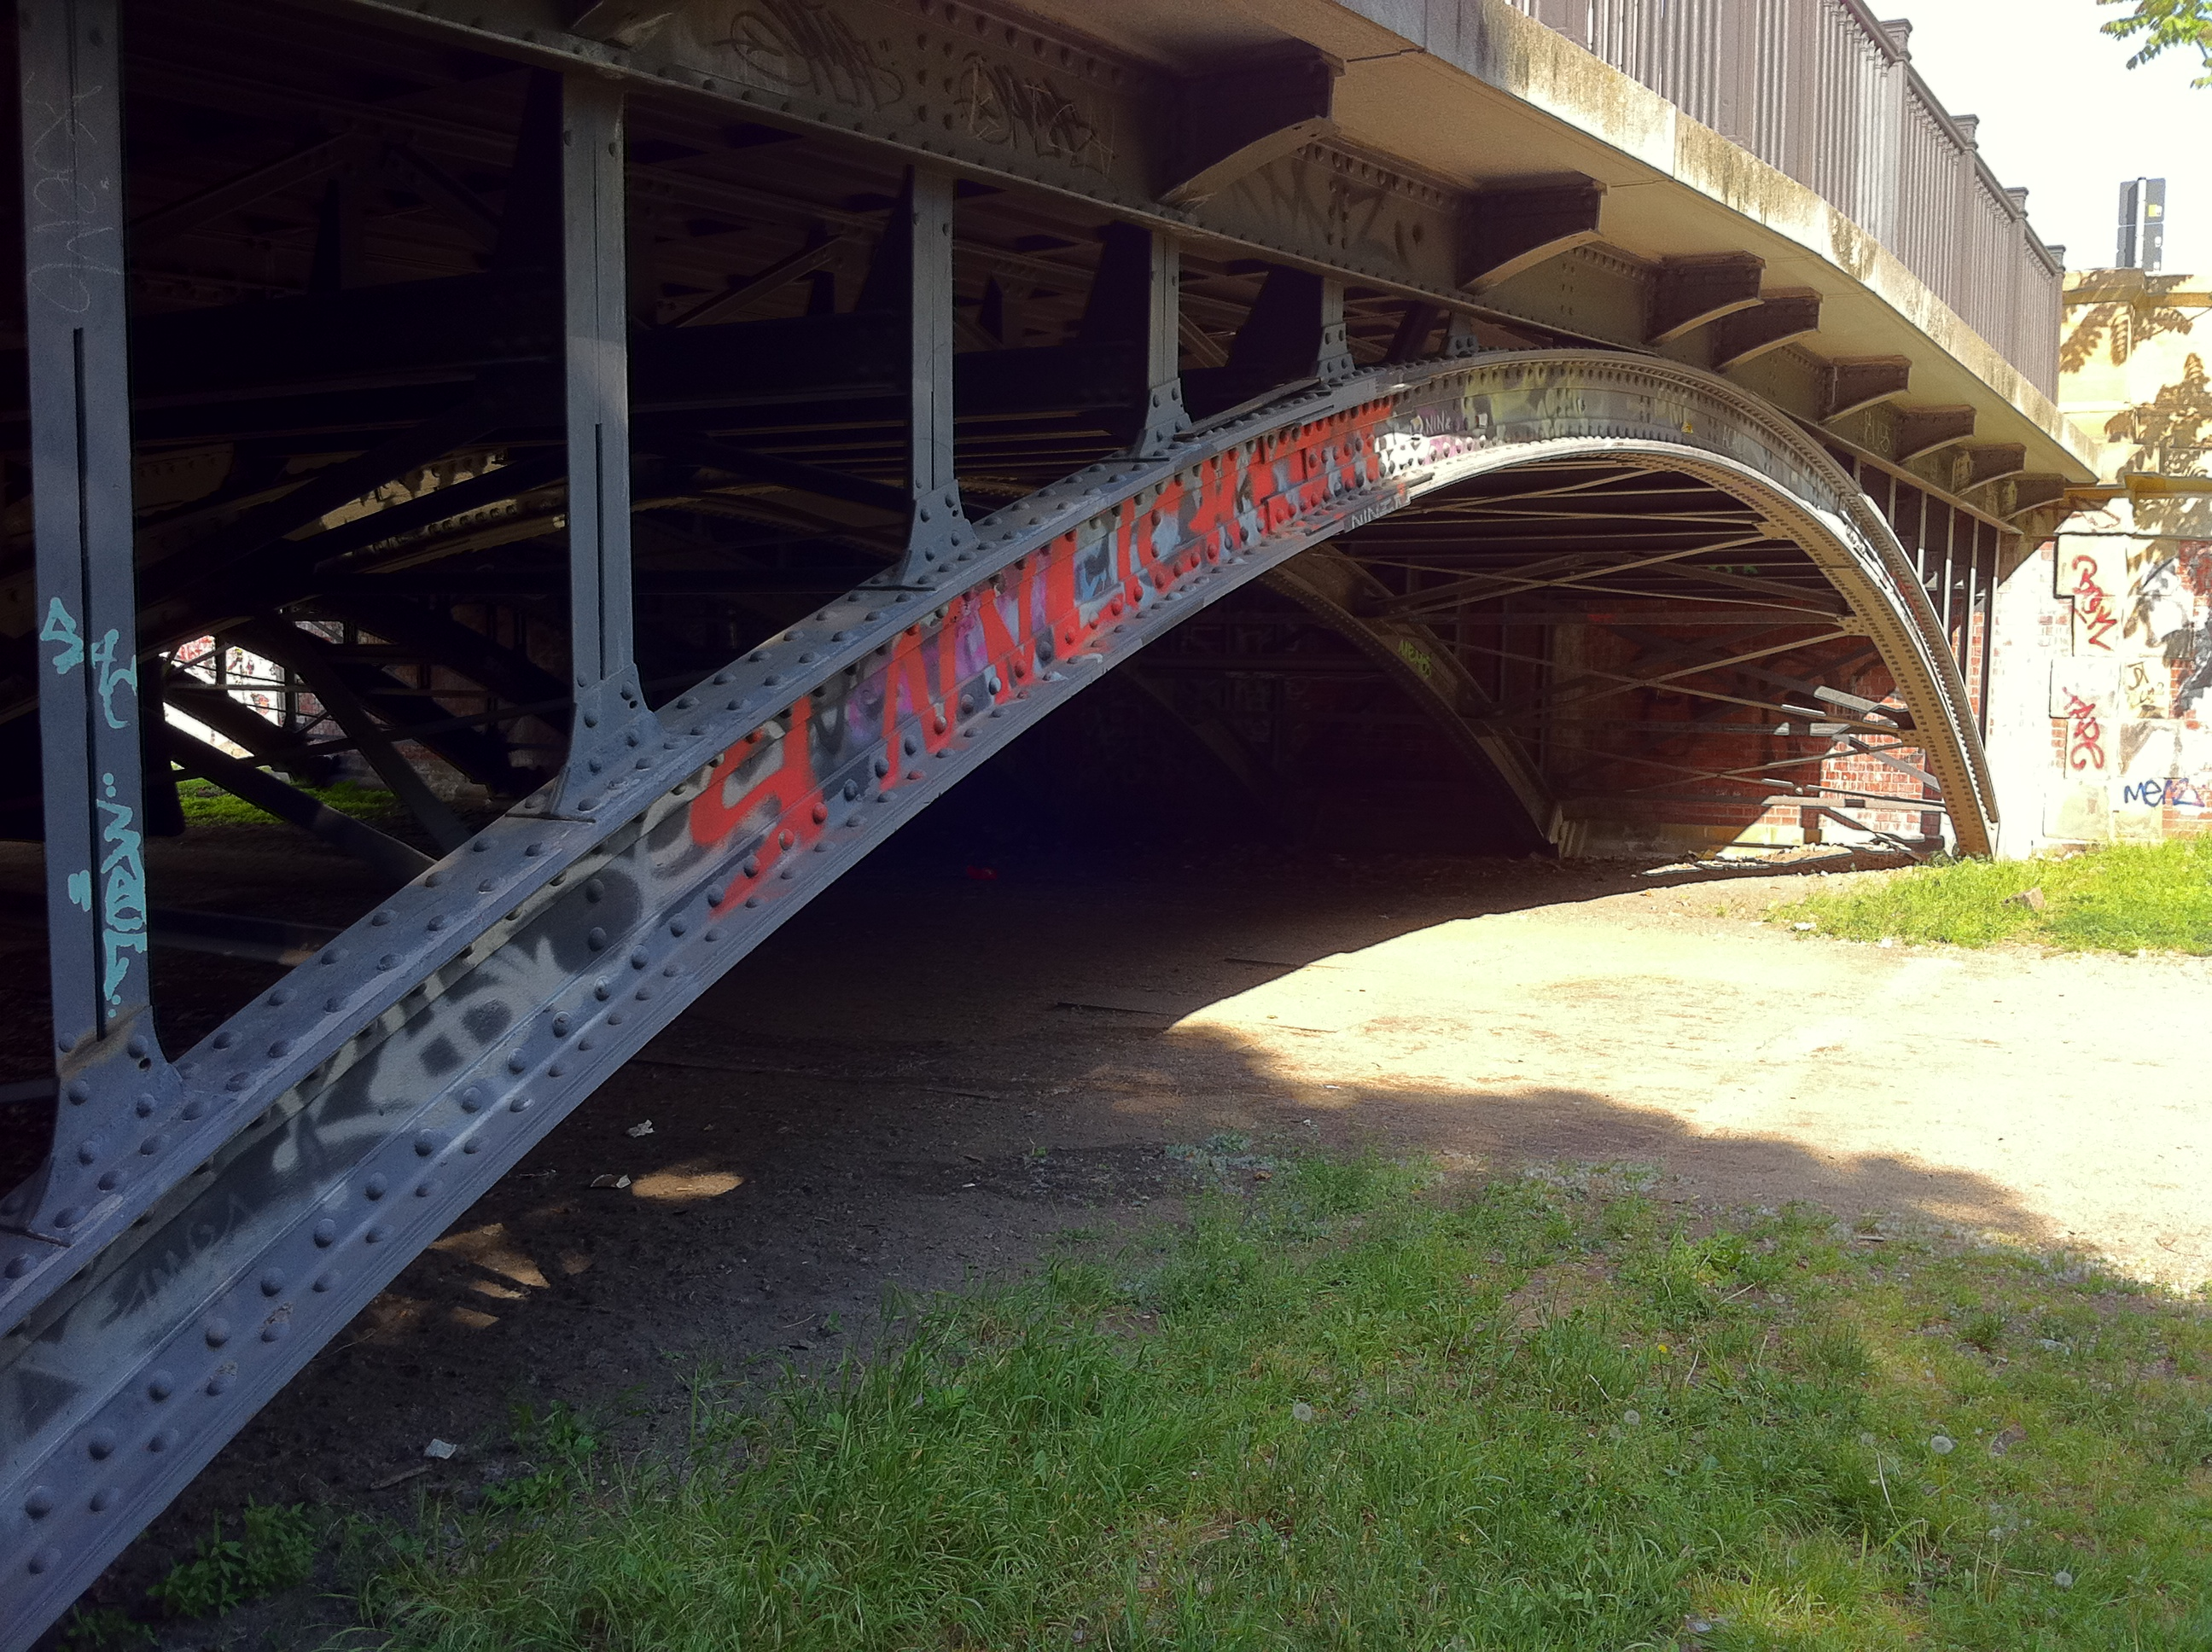 A bridge with graffiti in Berlin.